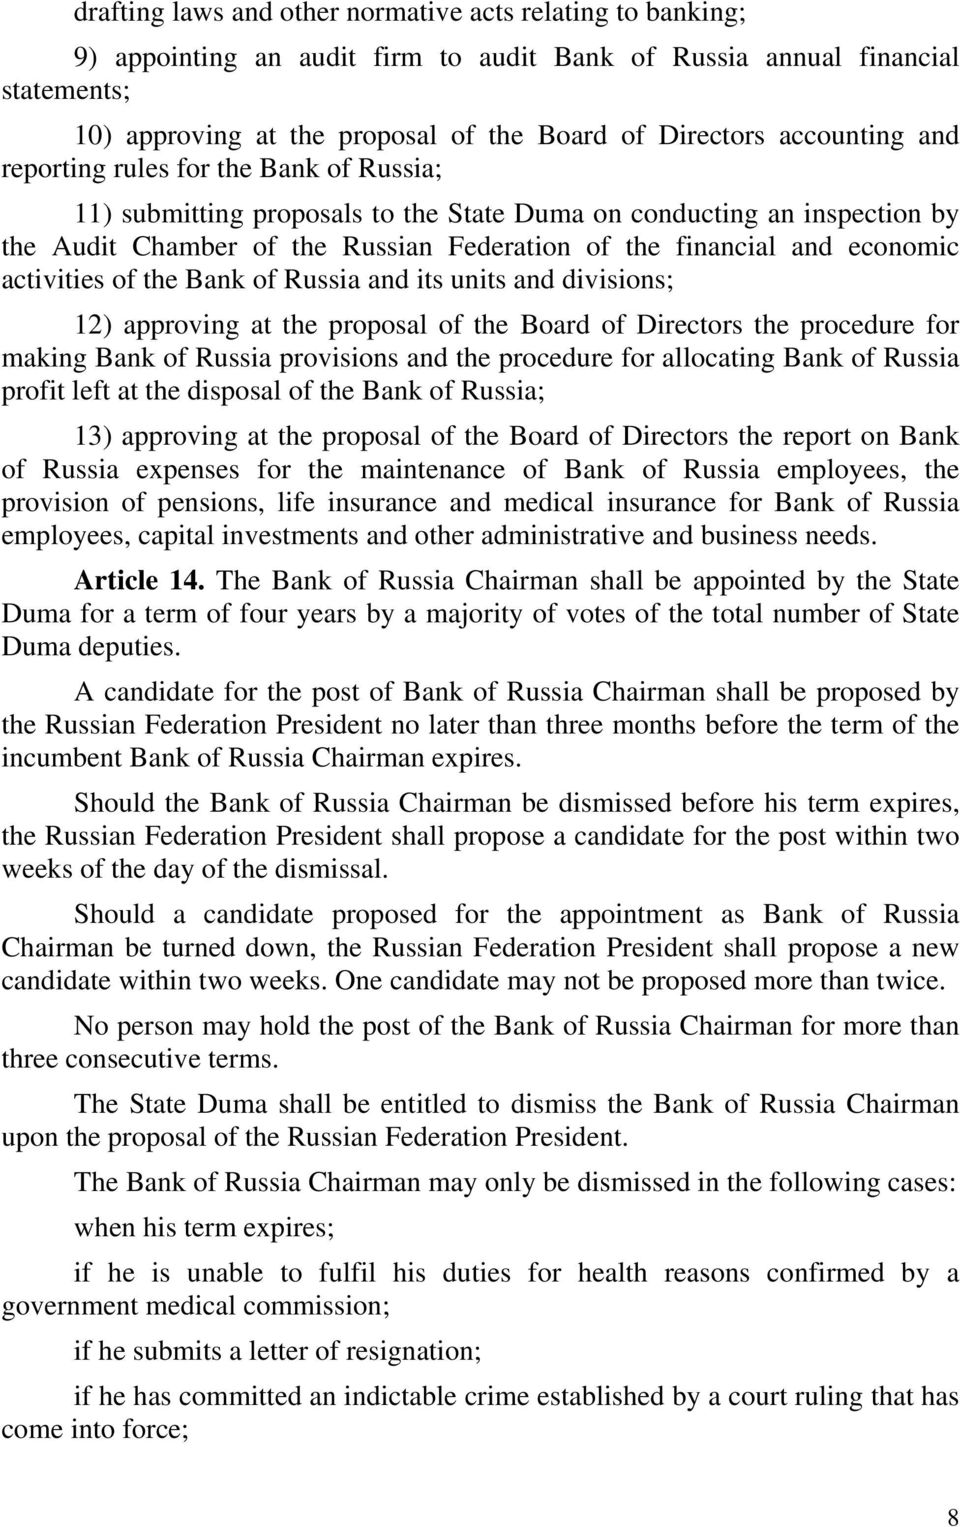 economic activities of the Bank of Russia and its units and divisions; 12) approving at the proposal of the Board of Directors the procedure for making Bank of Russia provisions and the procedure for